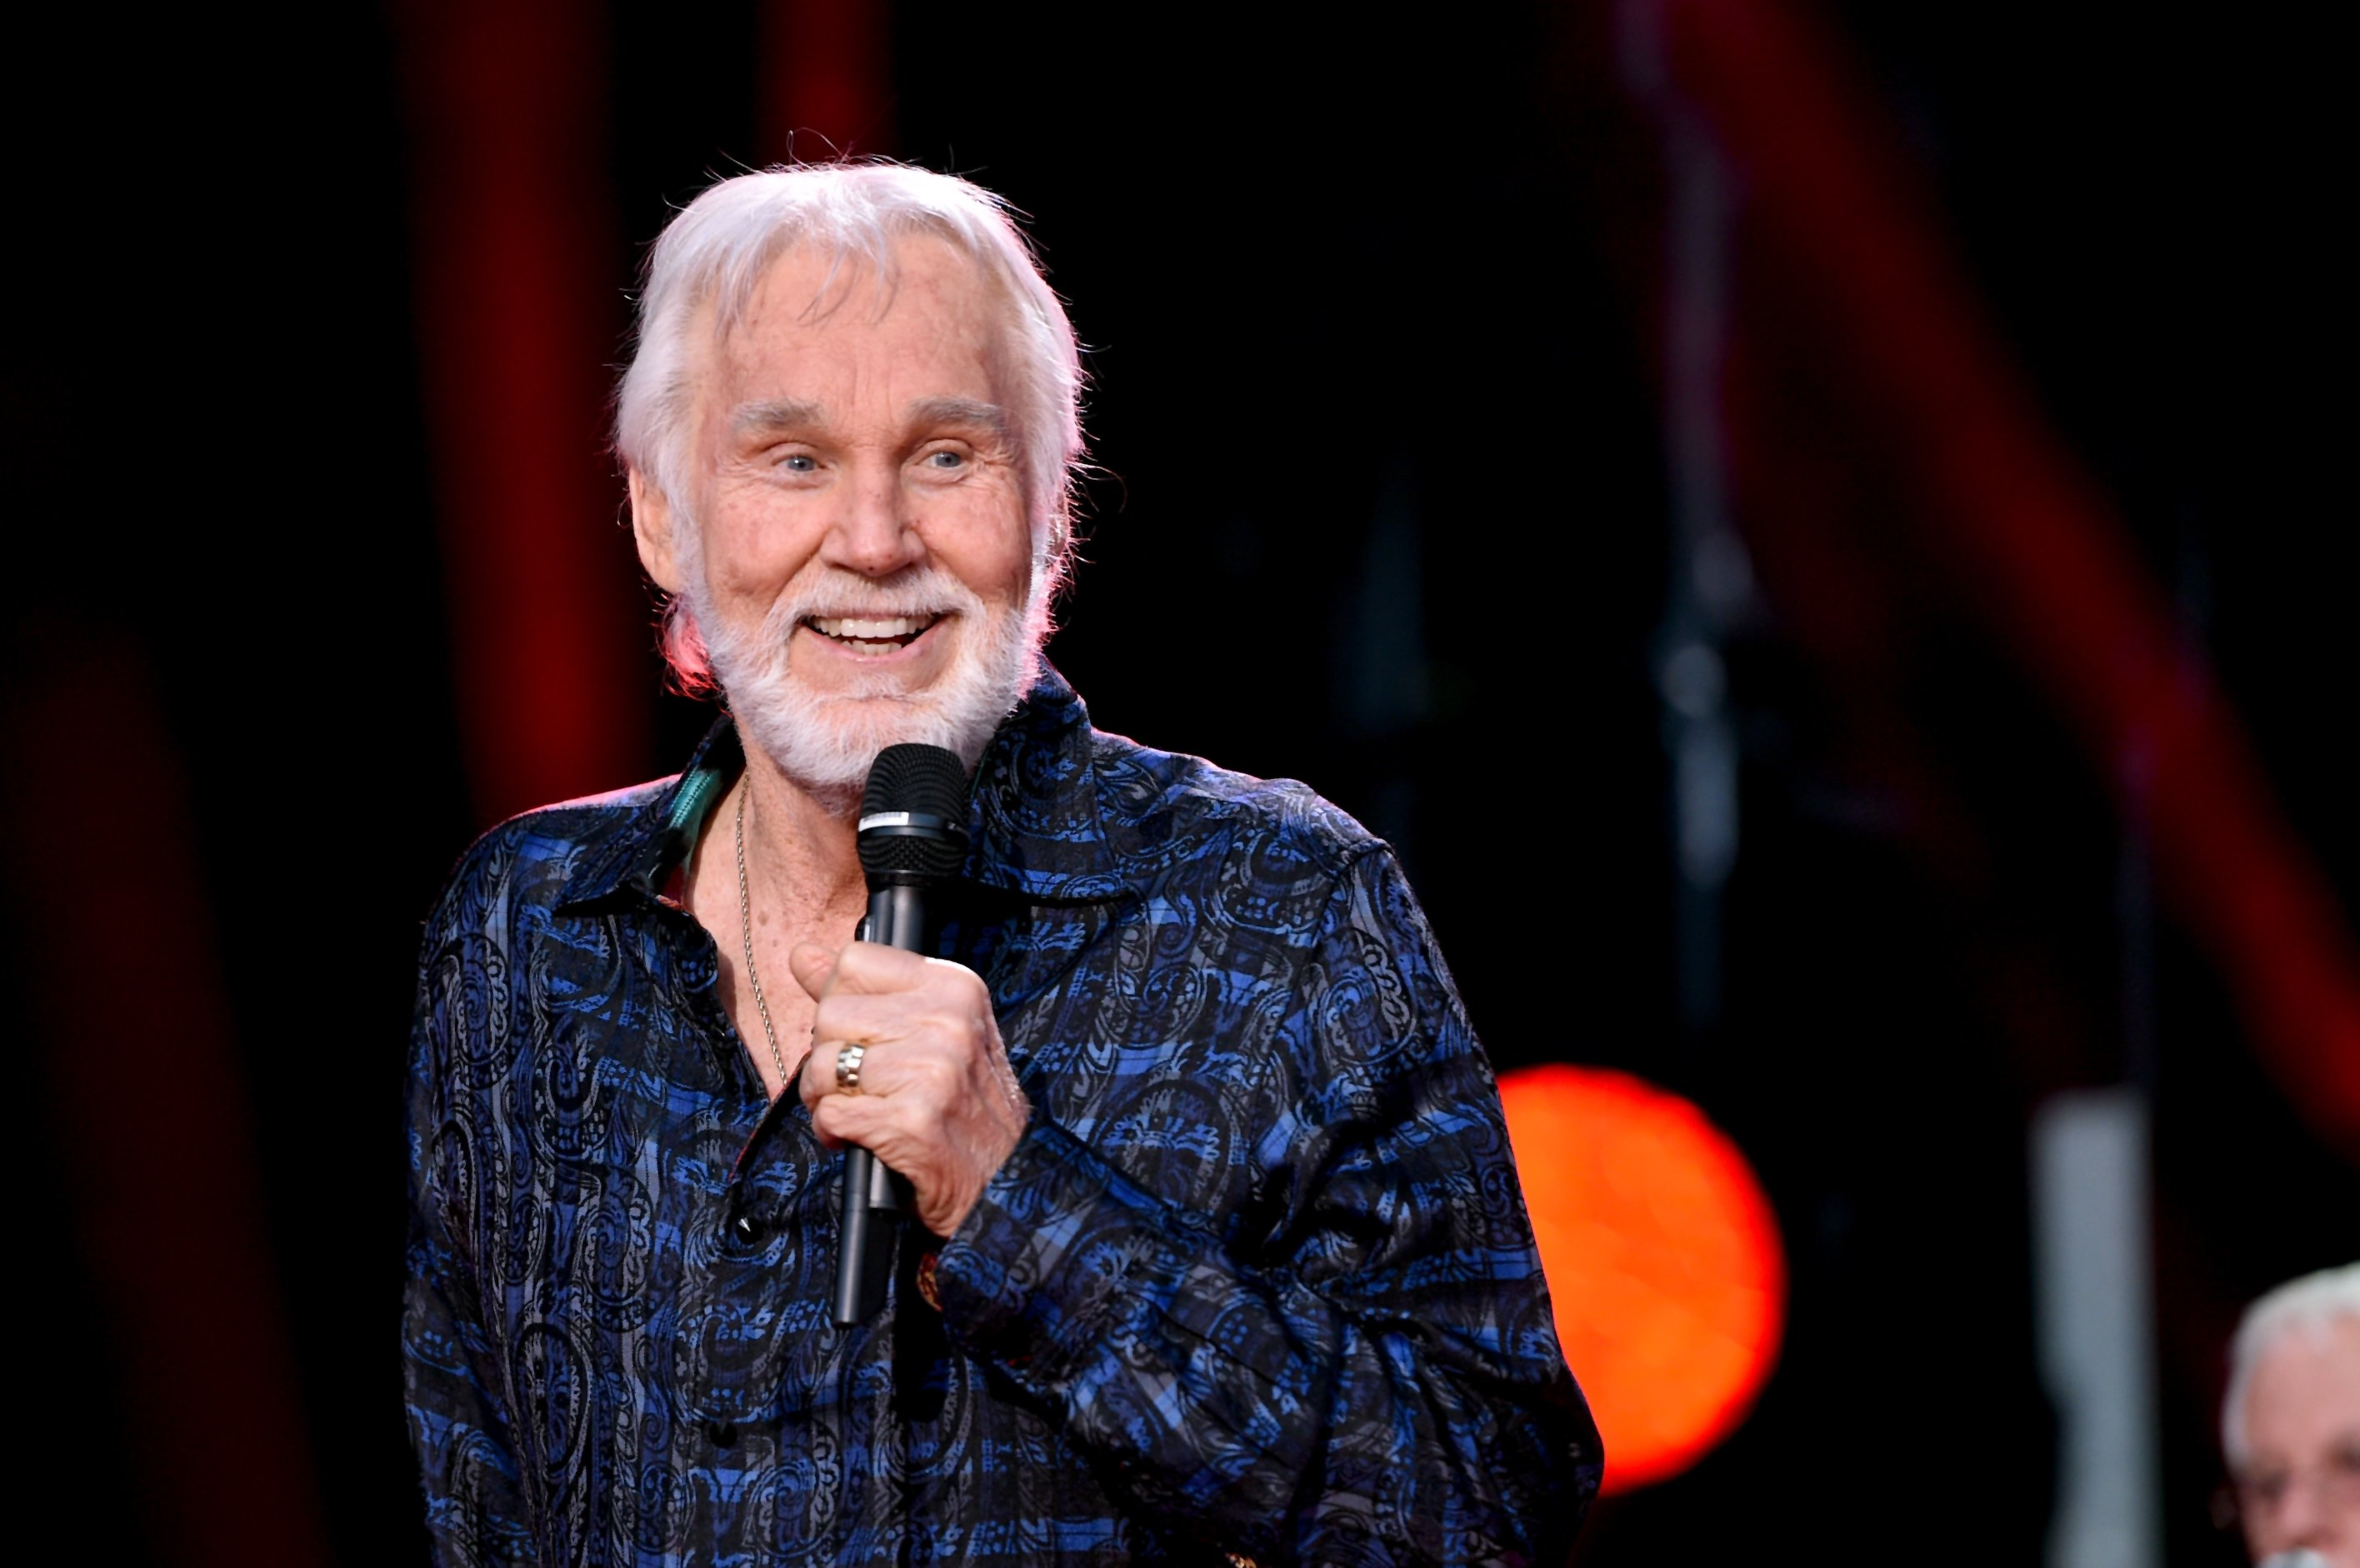 Kenny Rogers performs onstage for day 1 of the 2017 CMA Music Festival on June 8, 2017 in Nashville, Tennessee. | Photo: GettyImages